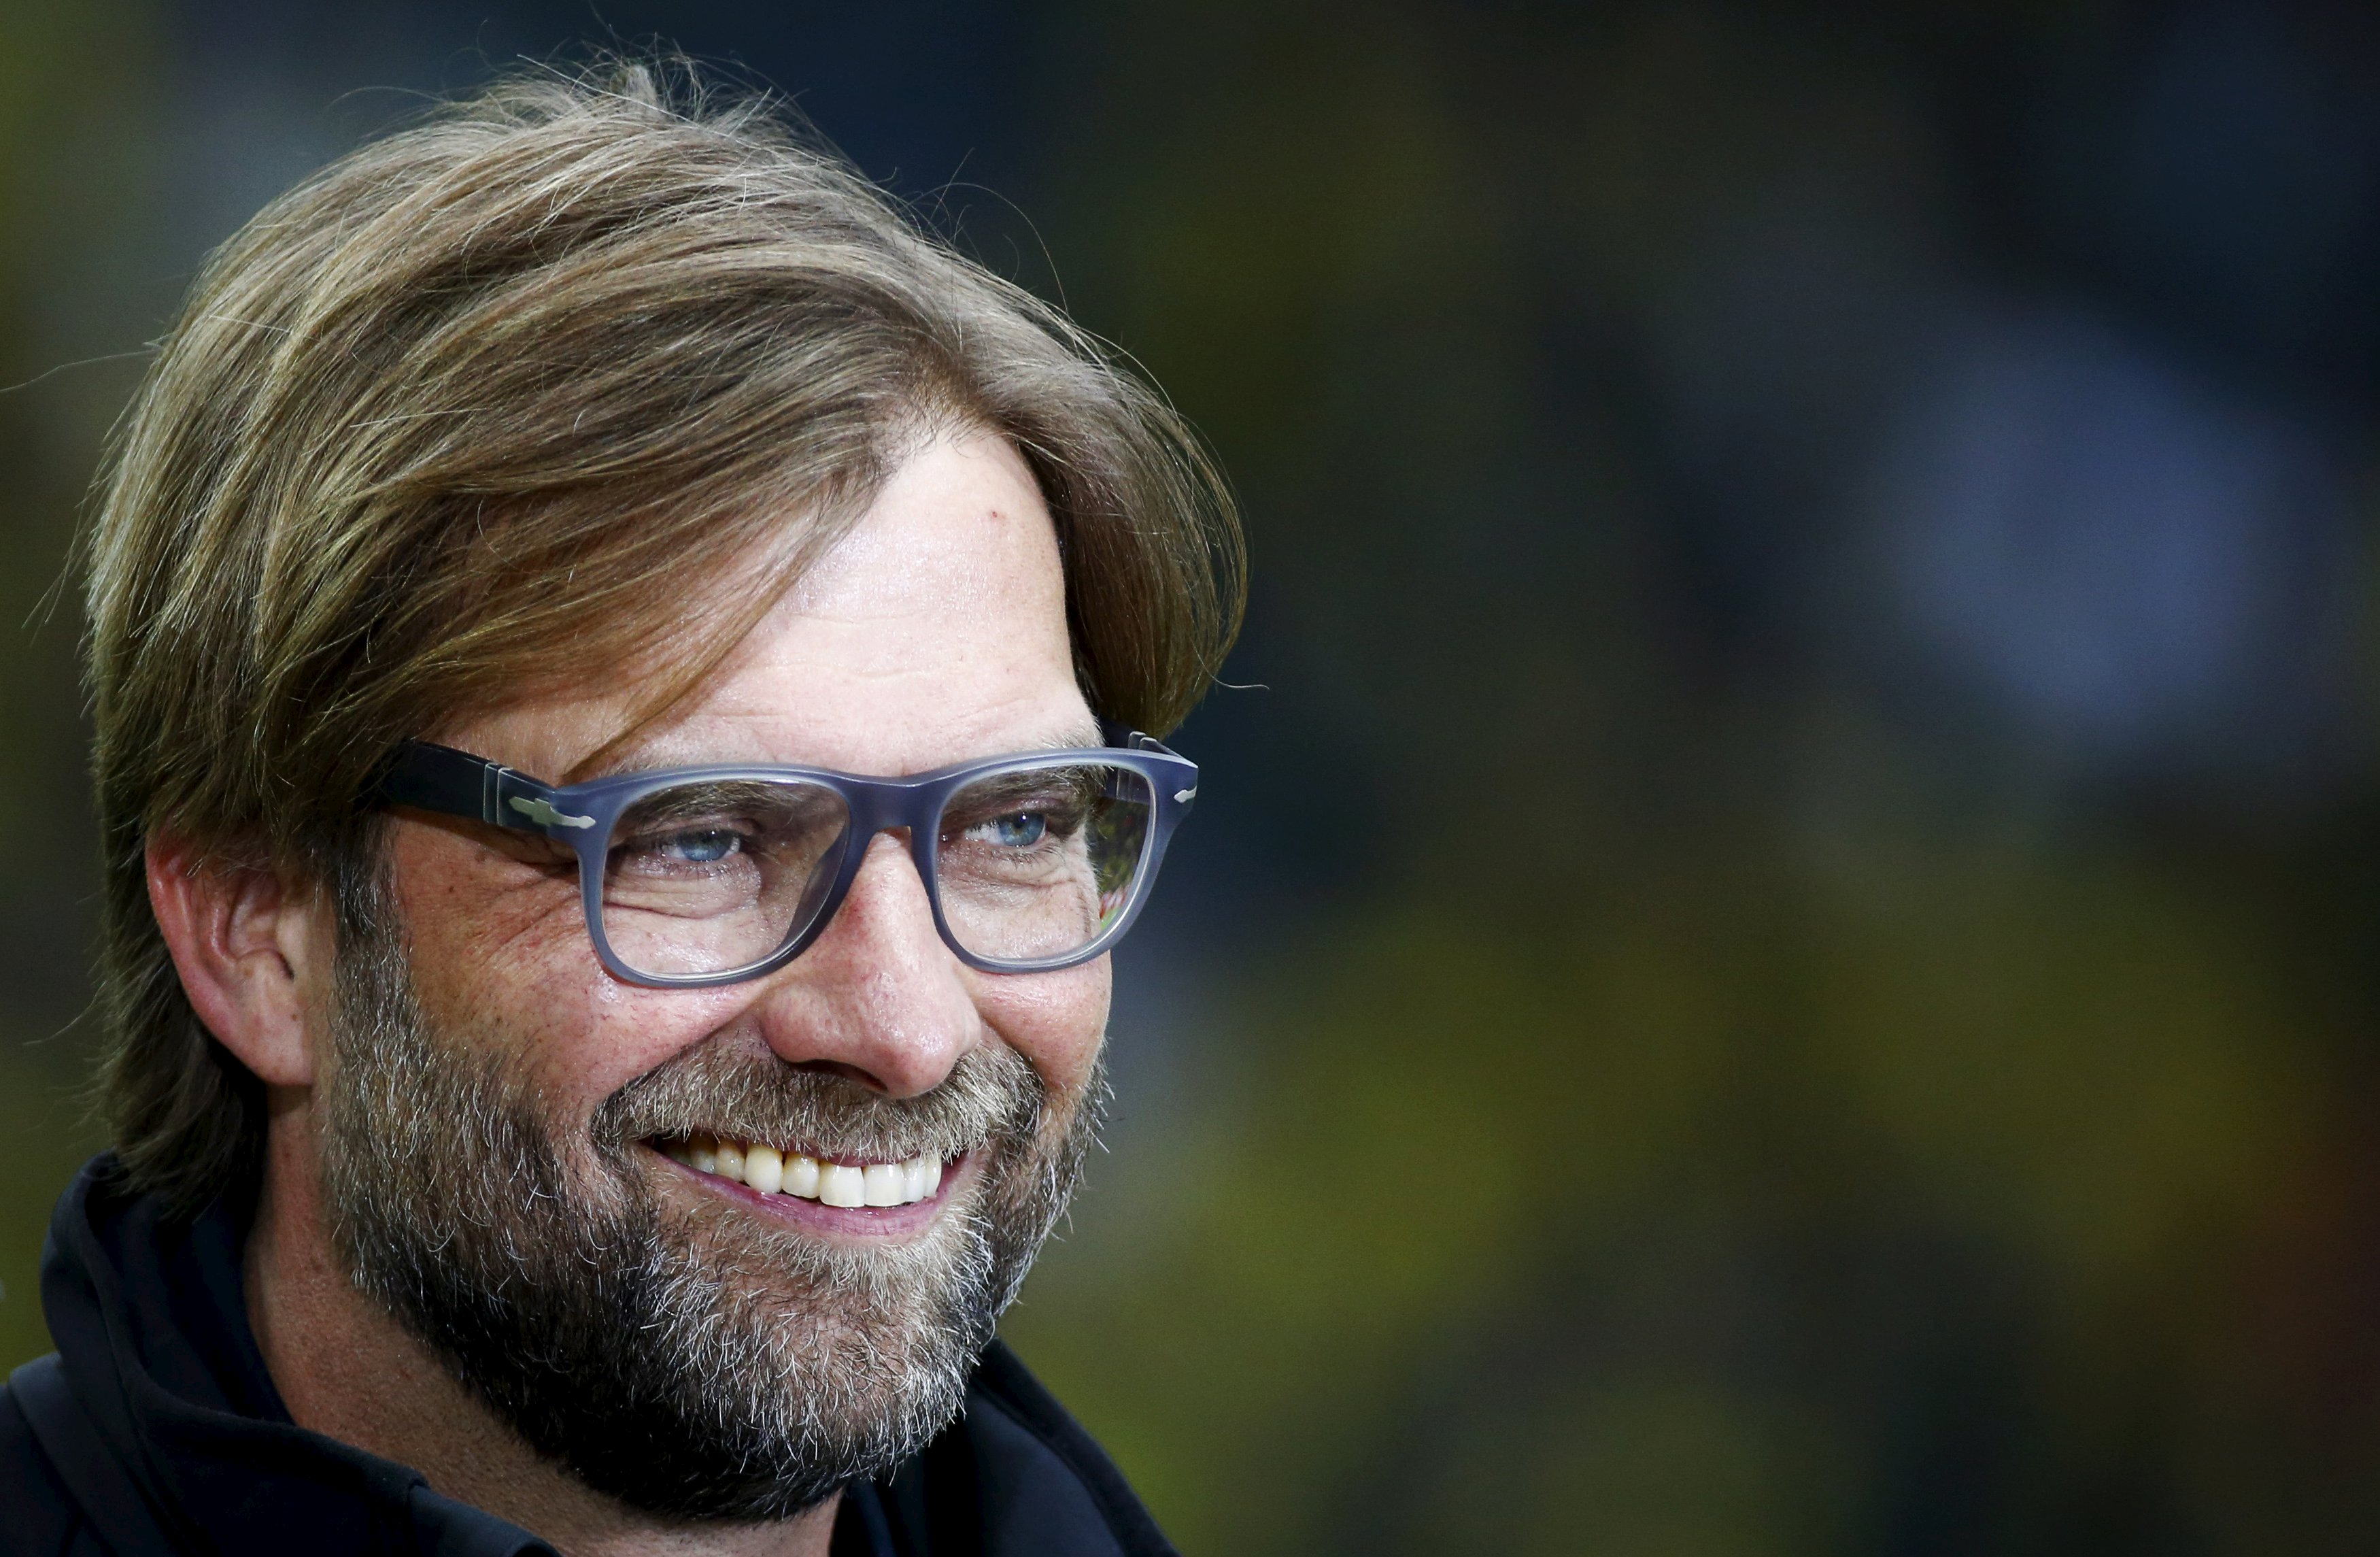 Juergen Klopp, then coach of Borussia Dortmund, smiles before their German Cup (DFB Pokal) final soccer match against Bayern Munich in Berlin, in this May 17, 2014 file picture. Liverpool have named former Borussia Dortmund coach Juergen Klopp as manager to replace the sacked Brendan Rodgers, the Premier League club said in a statement on October 8, 2015. The 48-year-old German has signed a deal to take over at Anfield and will be presented at a news conference on Friday.    REUTERS/Michael Dalder/Files